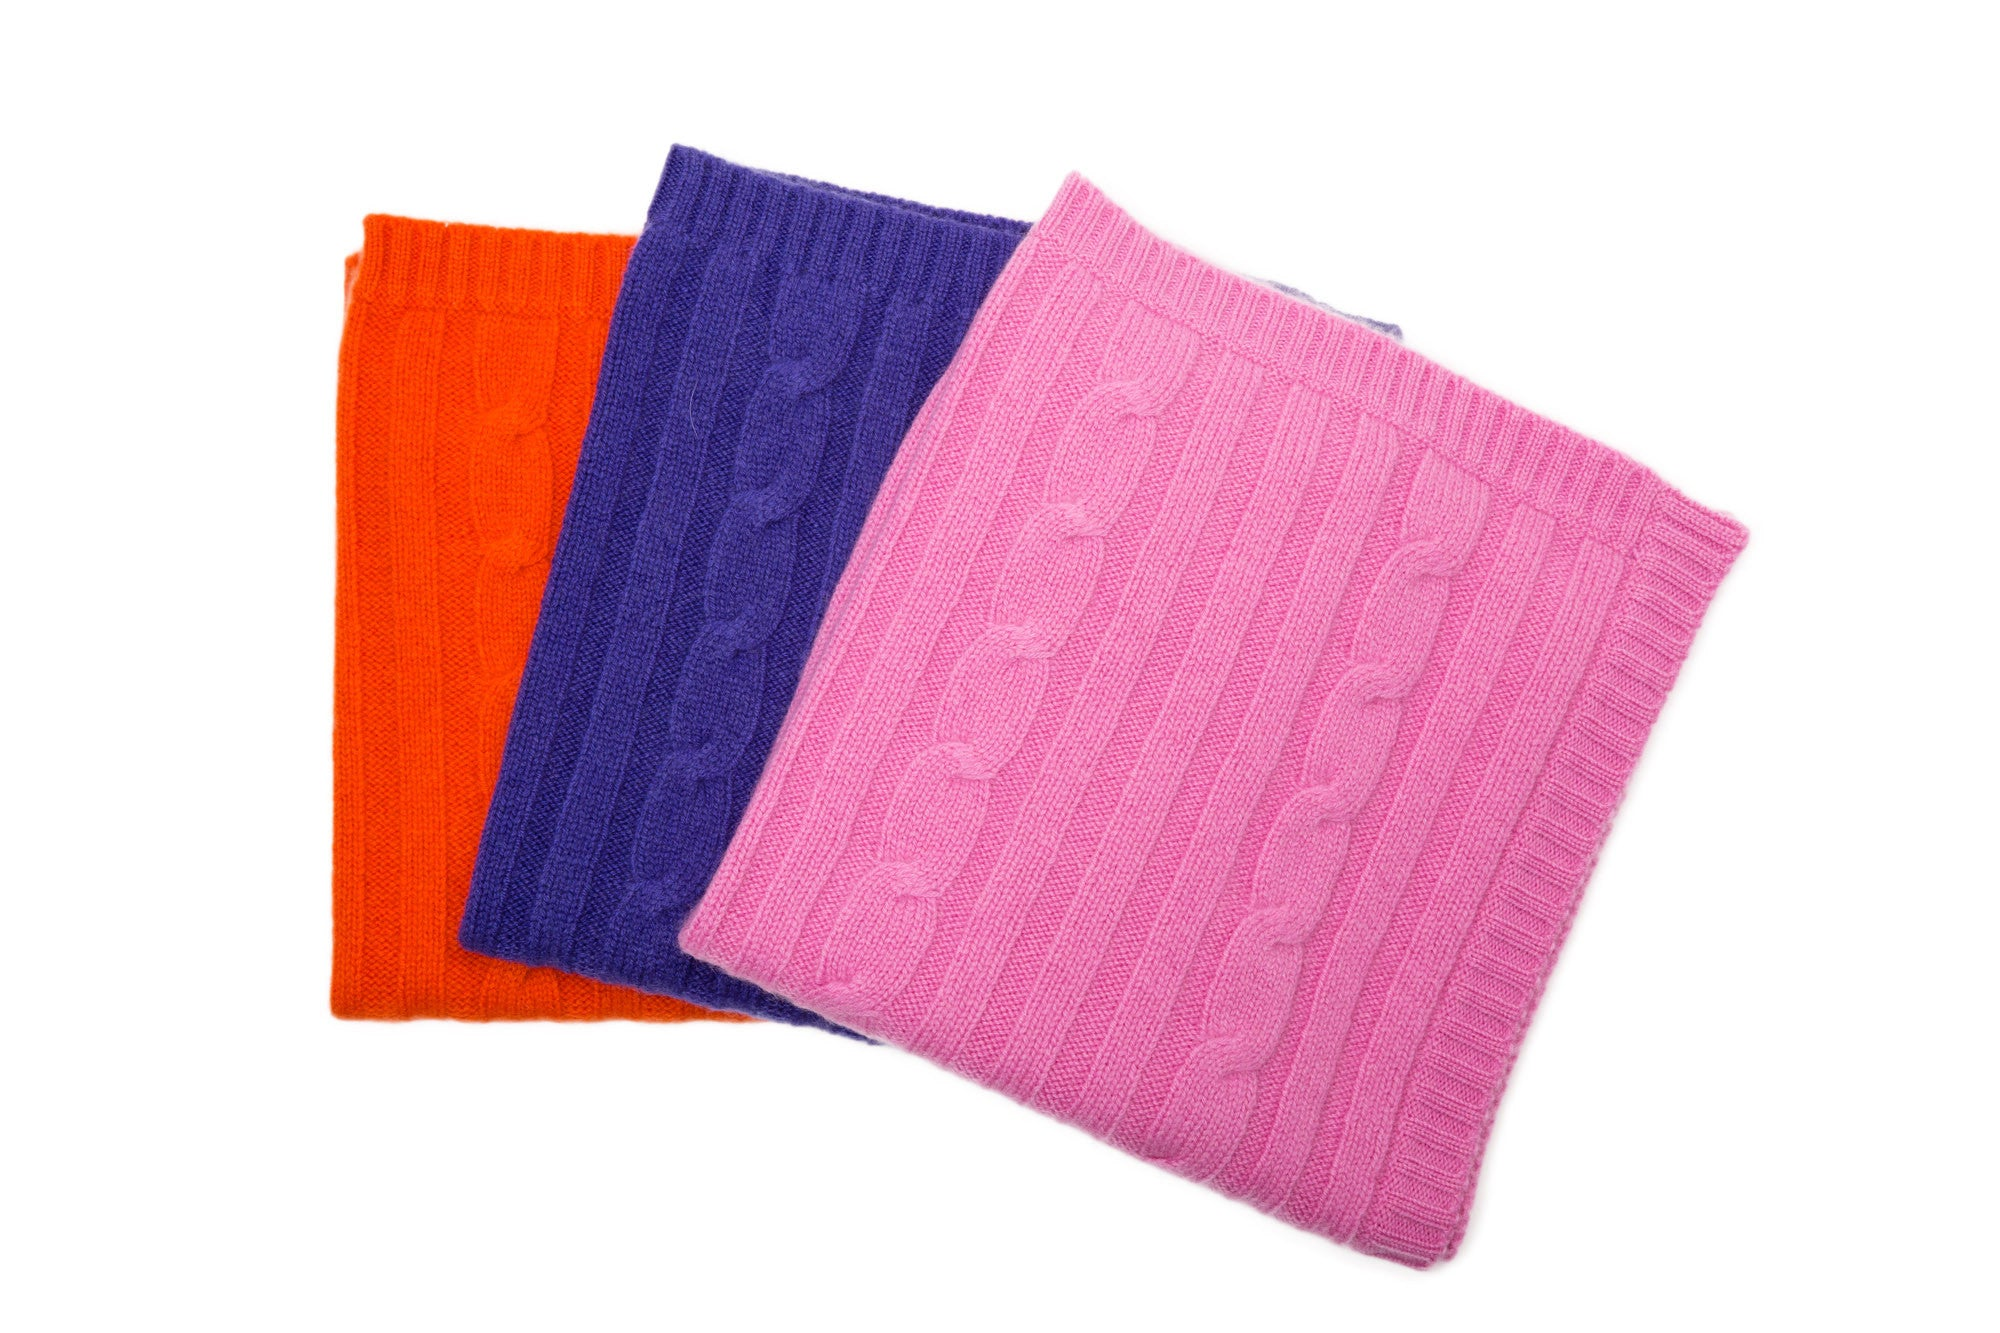 Cashmere Blanket - Orange, Purple, or Pink - Canine Styles - Dog Blanket - 3 Color Options